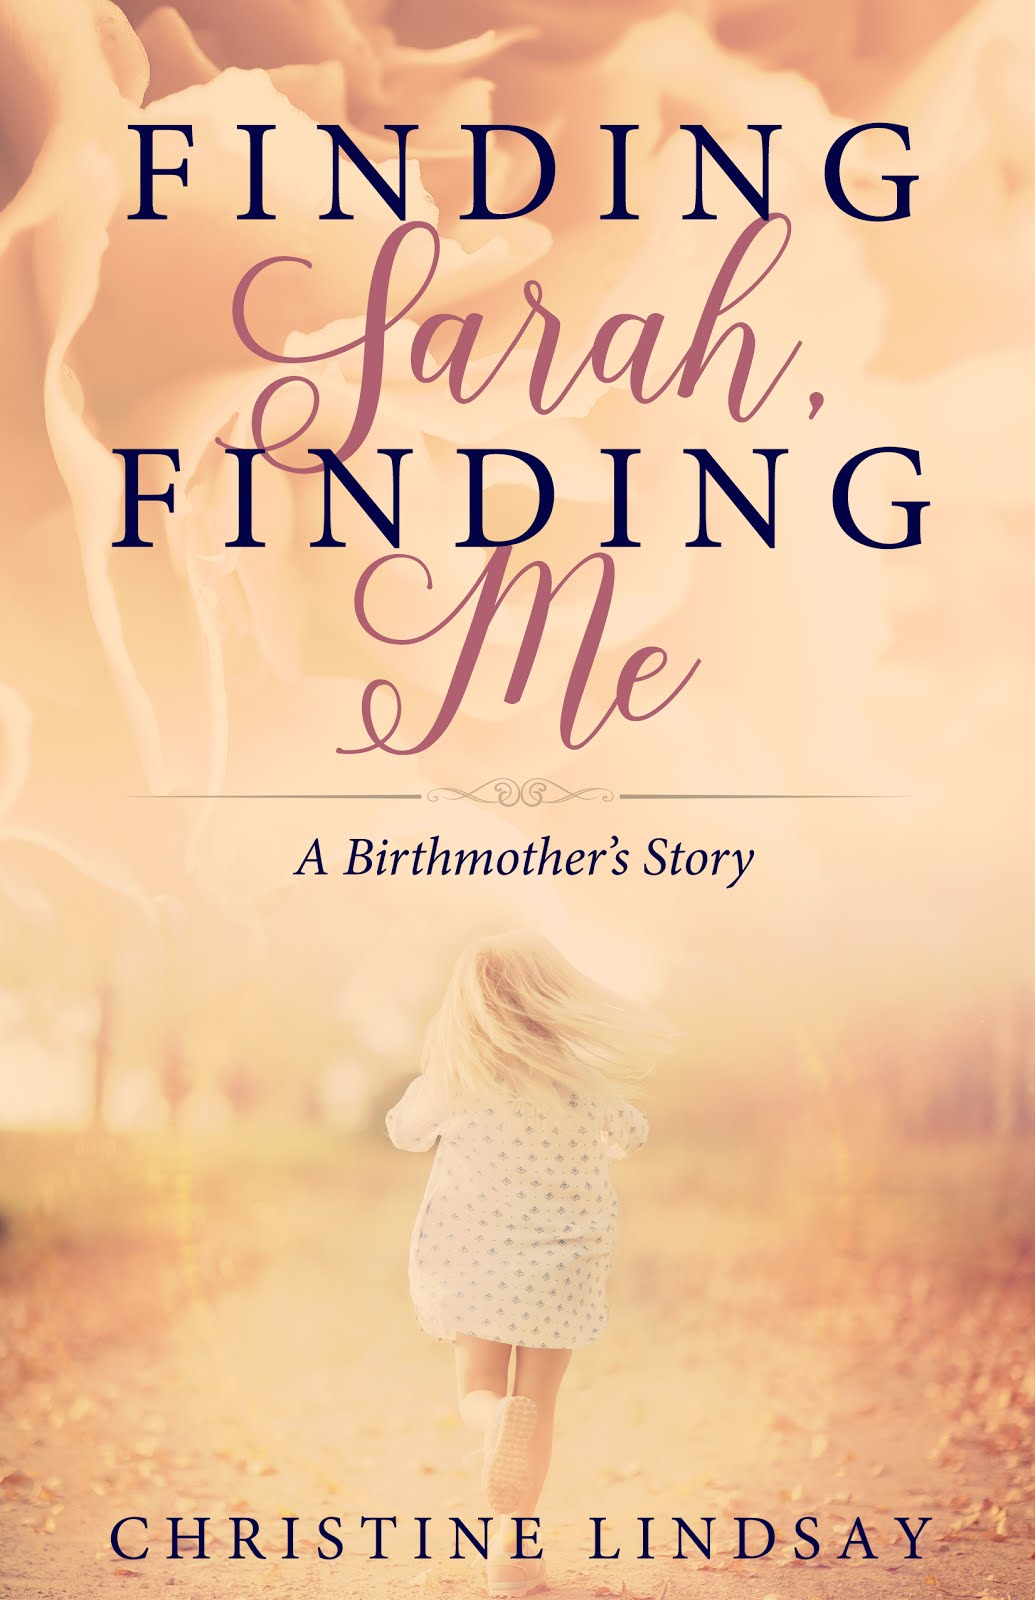 Finding Sarah, Finding Me: A Birthmother's Story